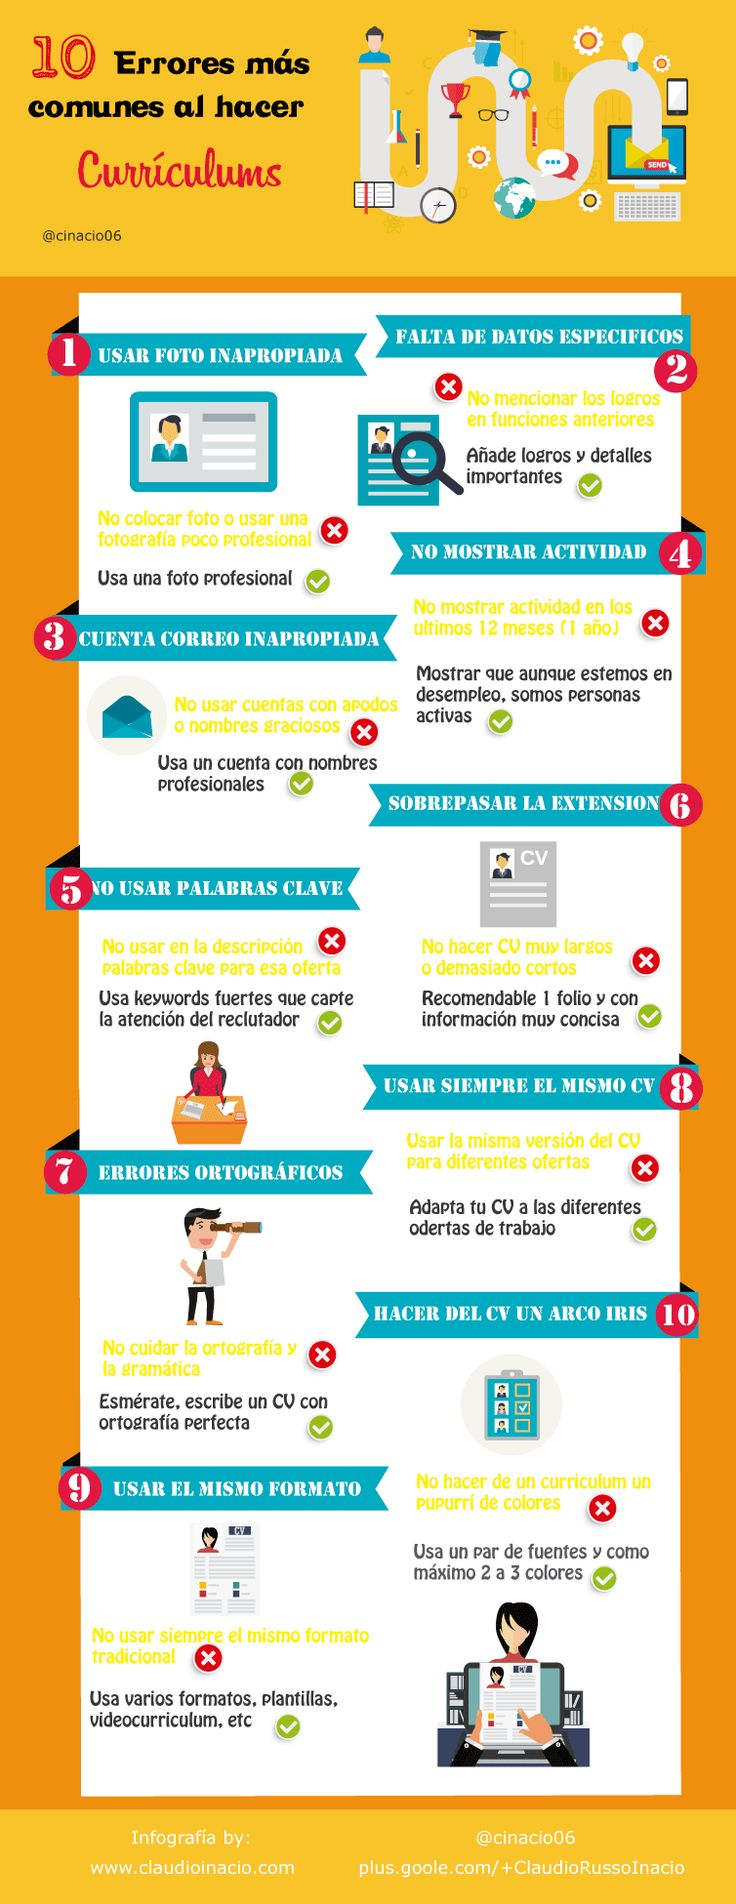 11 best CV images on Pinterest | Microsoft, Personal branding and ...